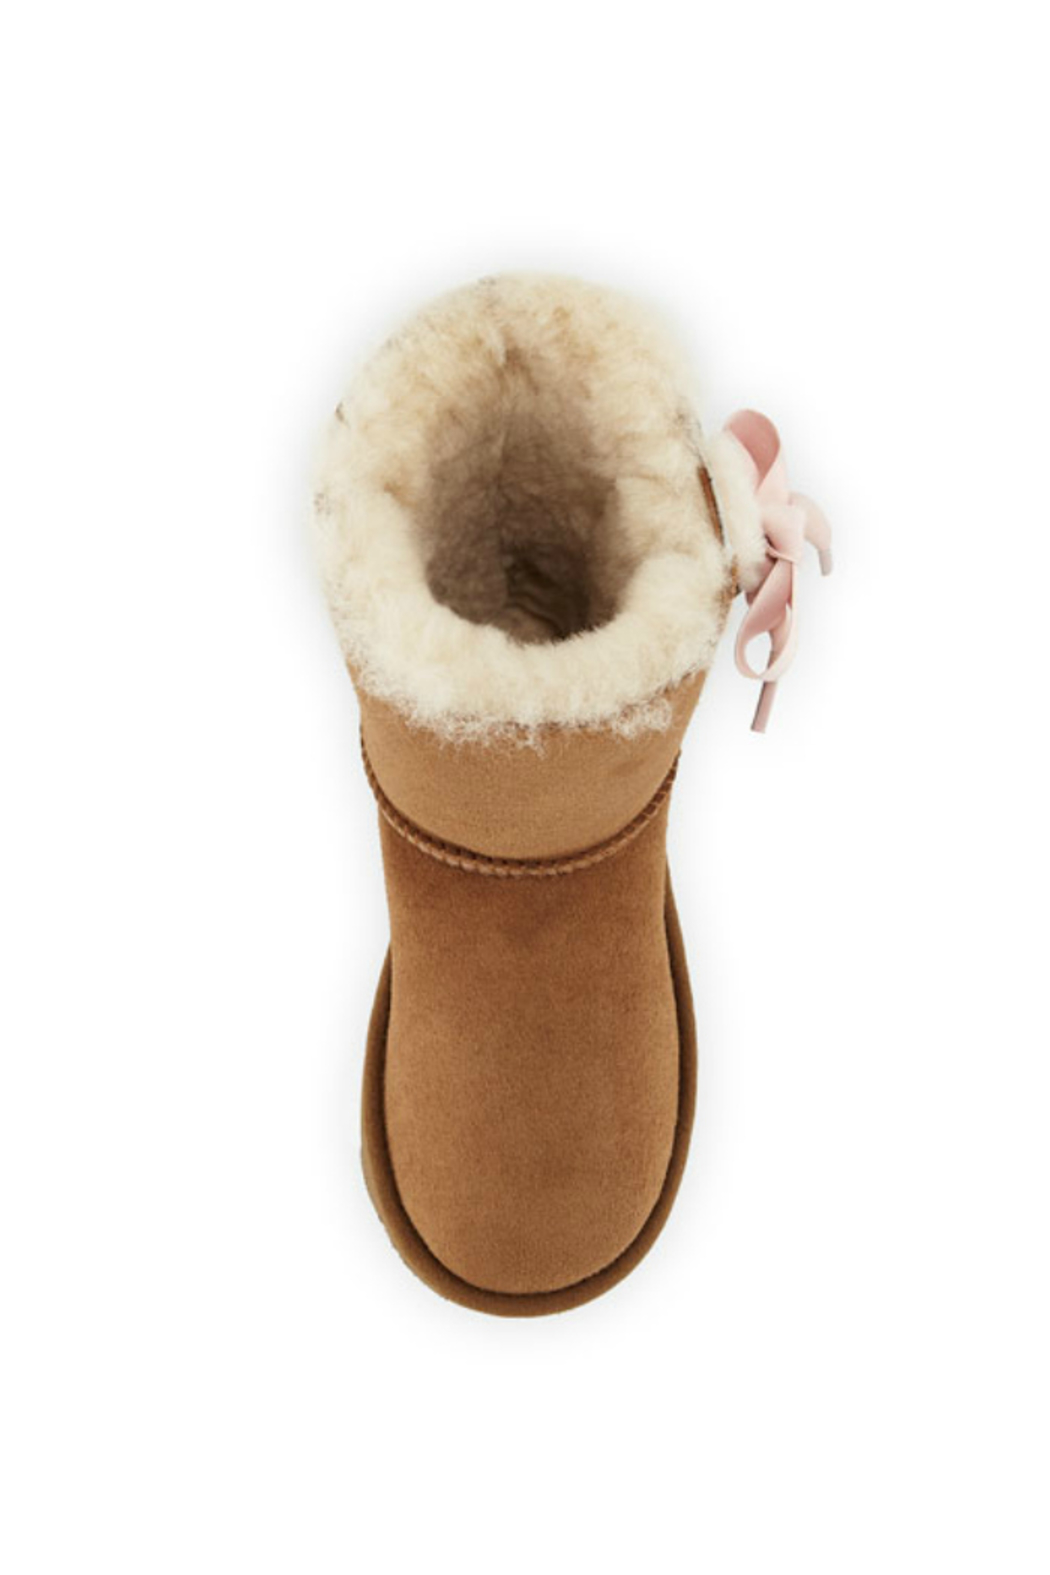 UGG Australia TODDLER PALA - Side Cropped Image